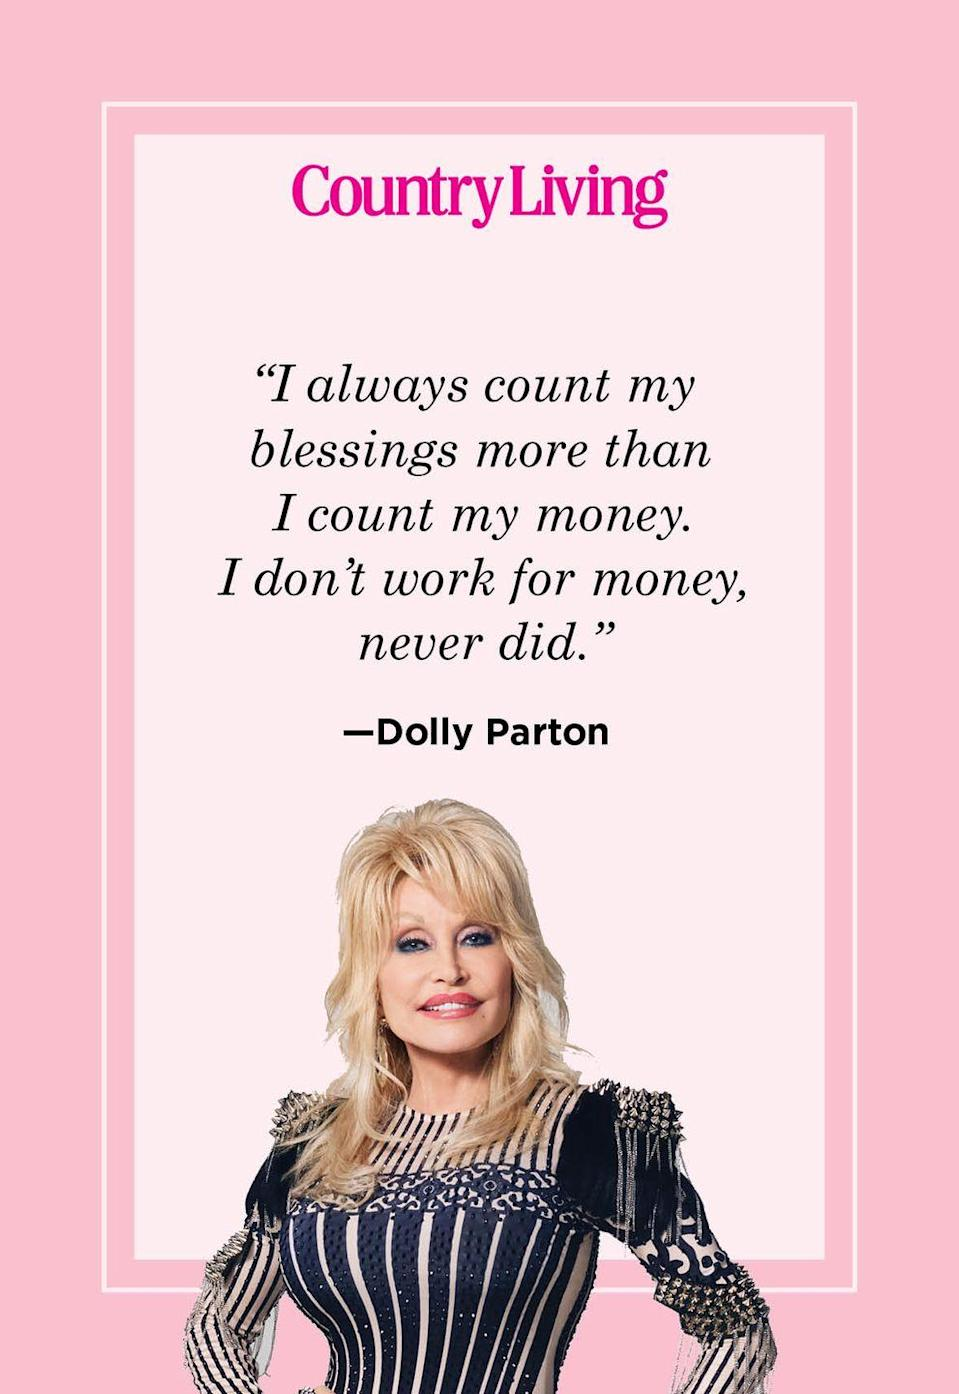 "<p>""I always count my blessings more than I count my money. I don't work for money, never did.""</p>"